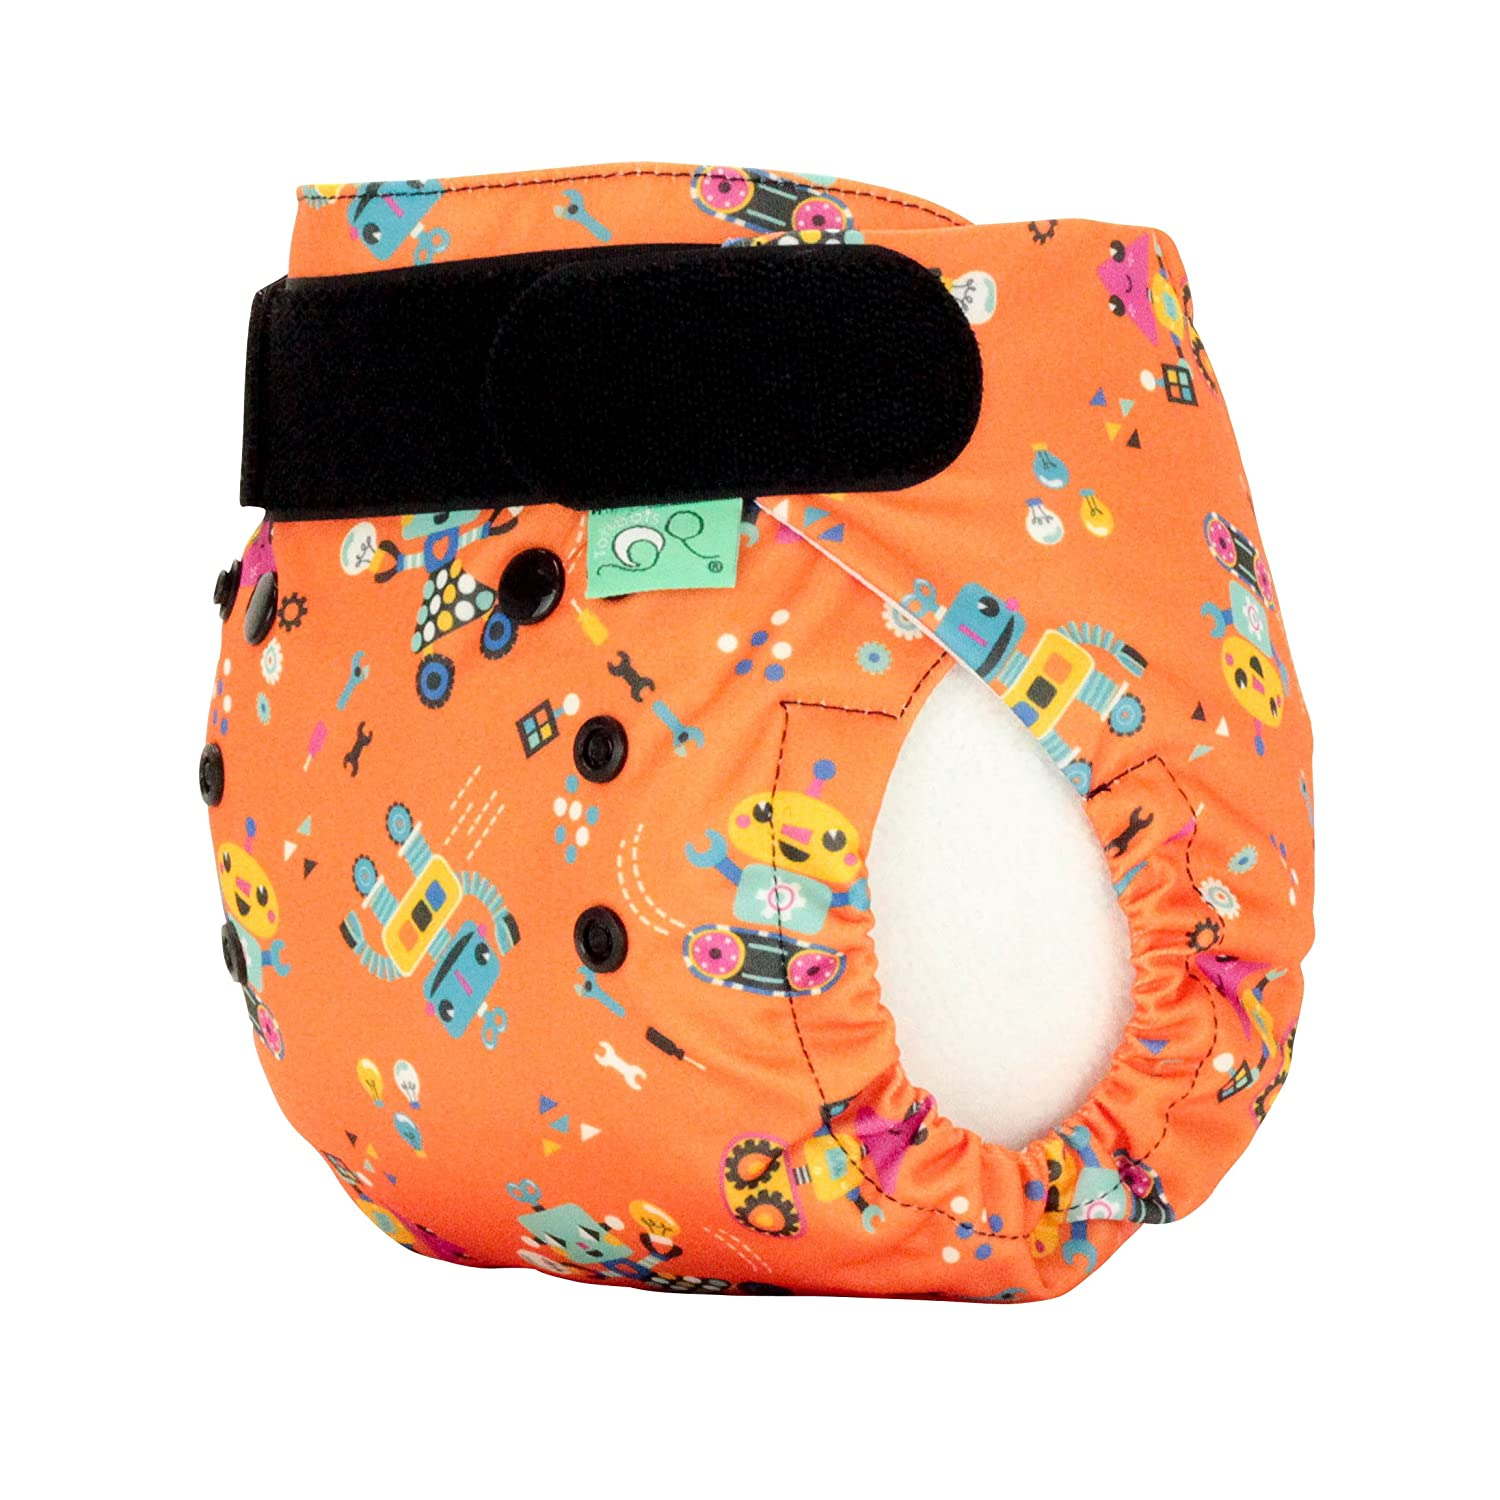 TotsBots Bamboozle Washable Reusable Nappy Size 1 6 to 18 lbs Roar Design